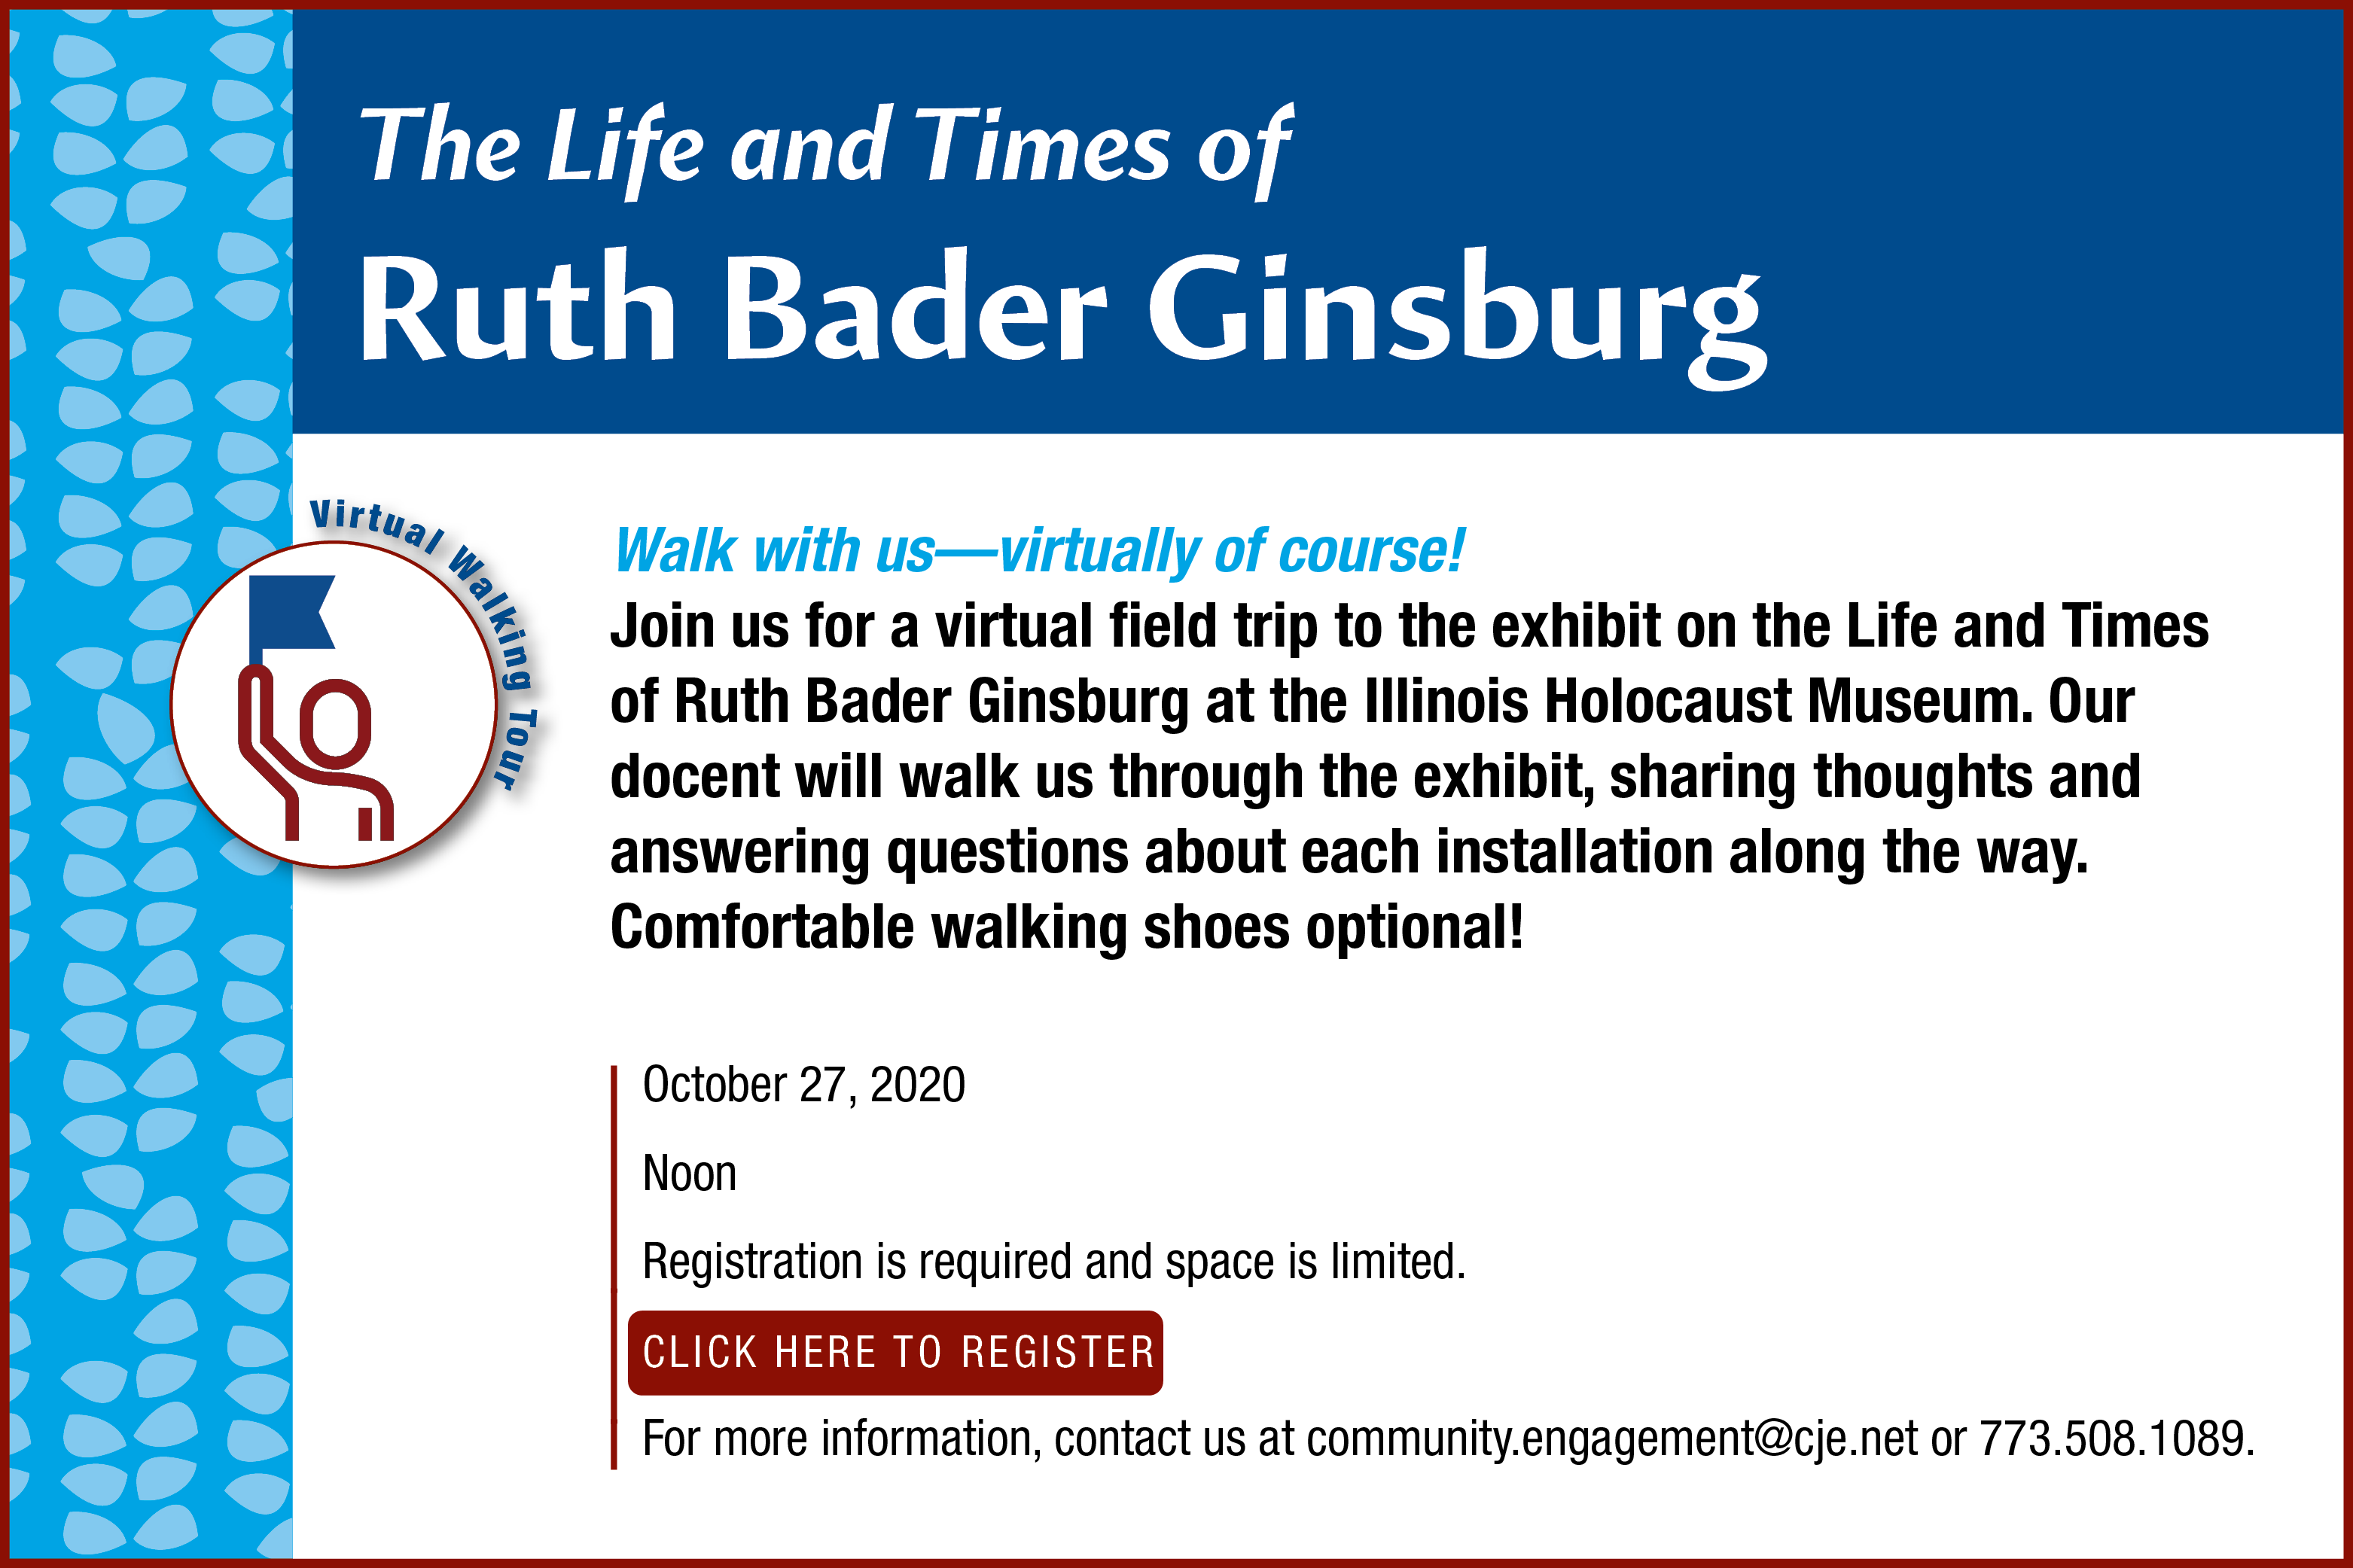 Life and Times of Ruth Bader Ginsburg at the Illinois Holocaust Museum